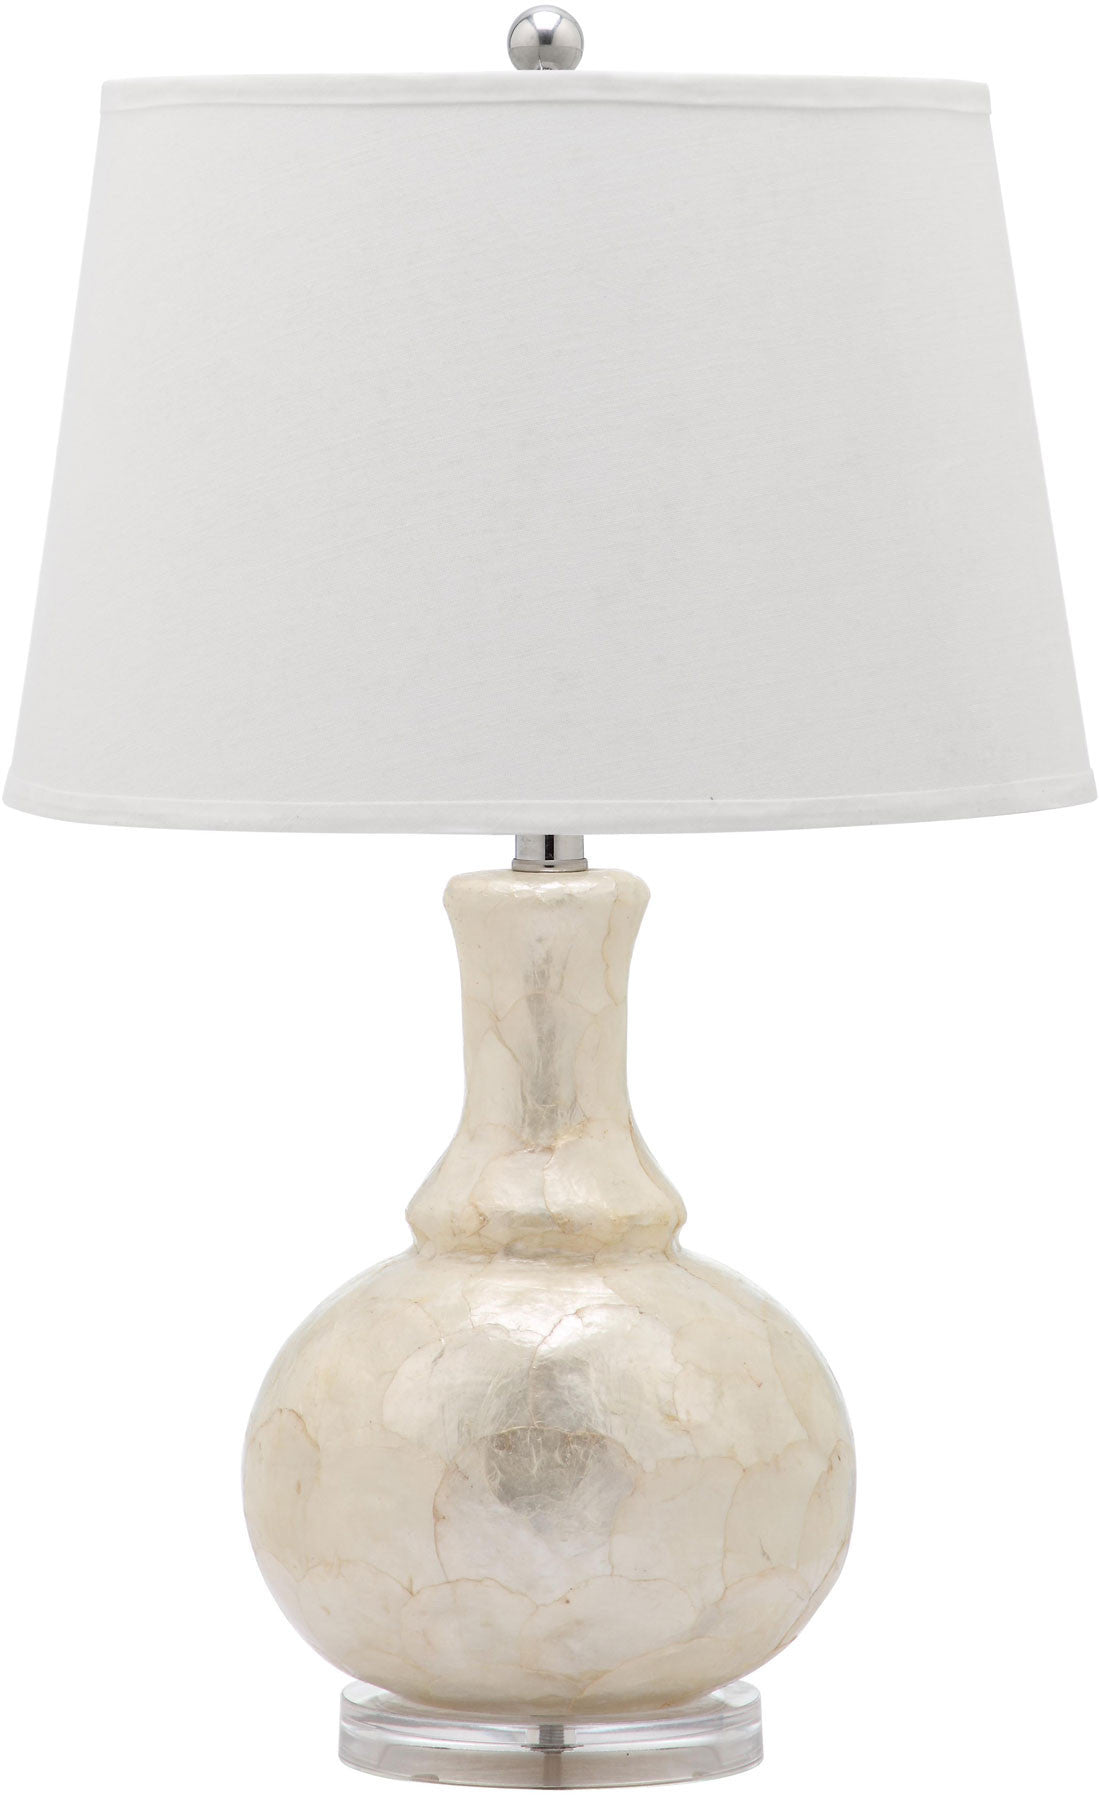 Shelley gourd table lamp in capiz shell with white shade set of 2 shelley gourd table lamp in capiz shell with white shade set of 2 aloadofball Images